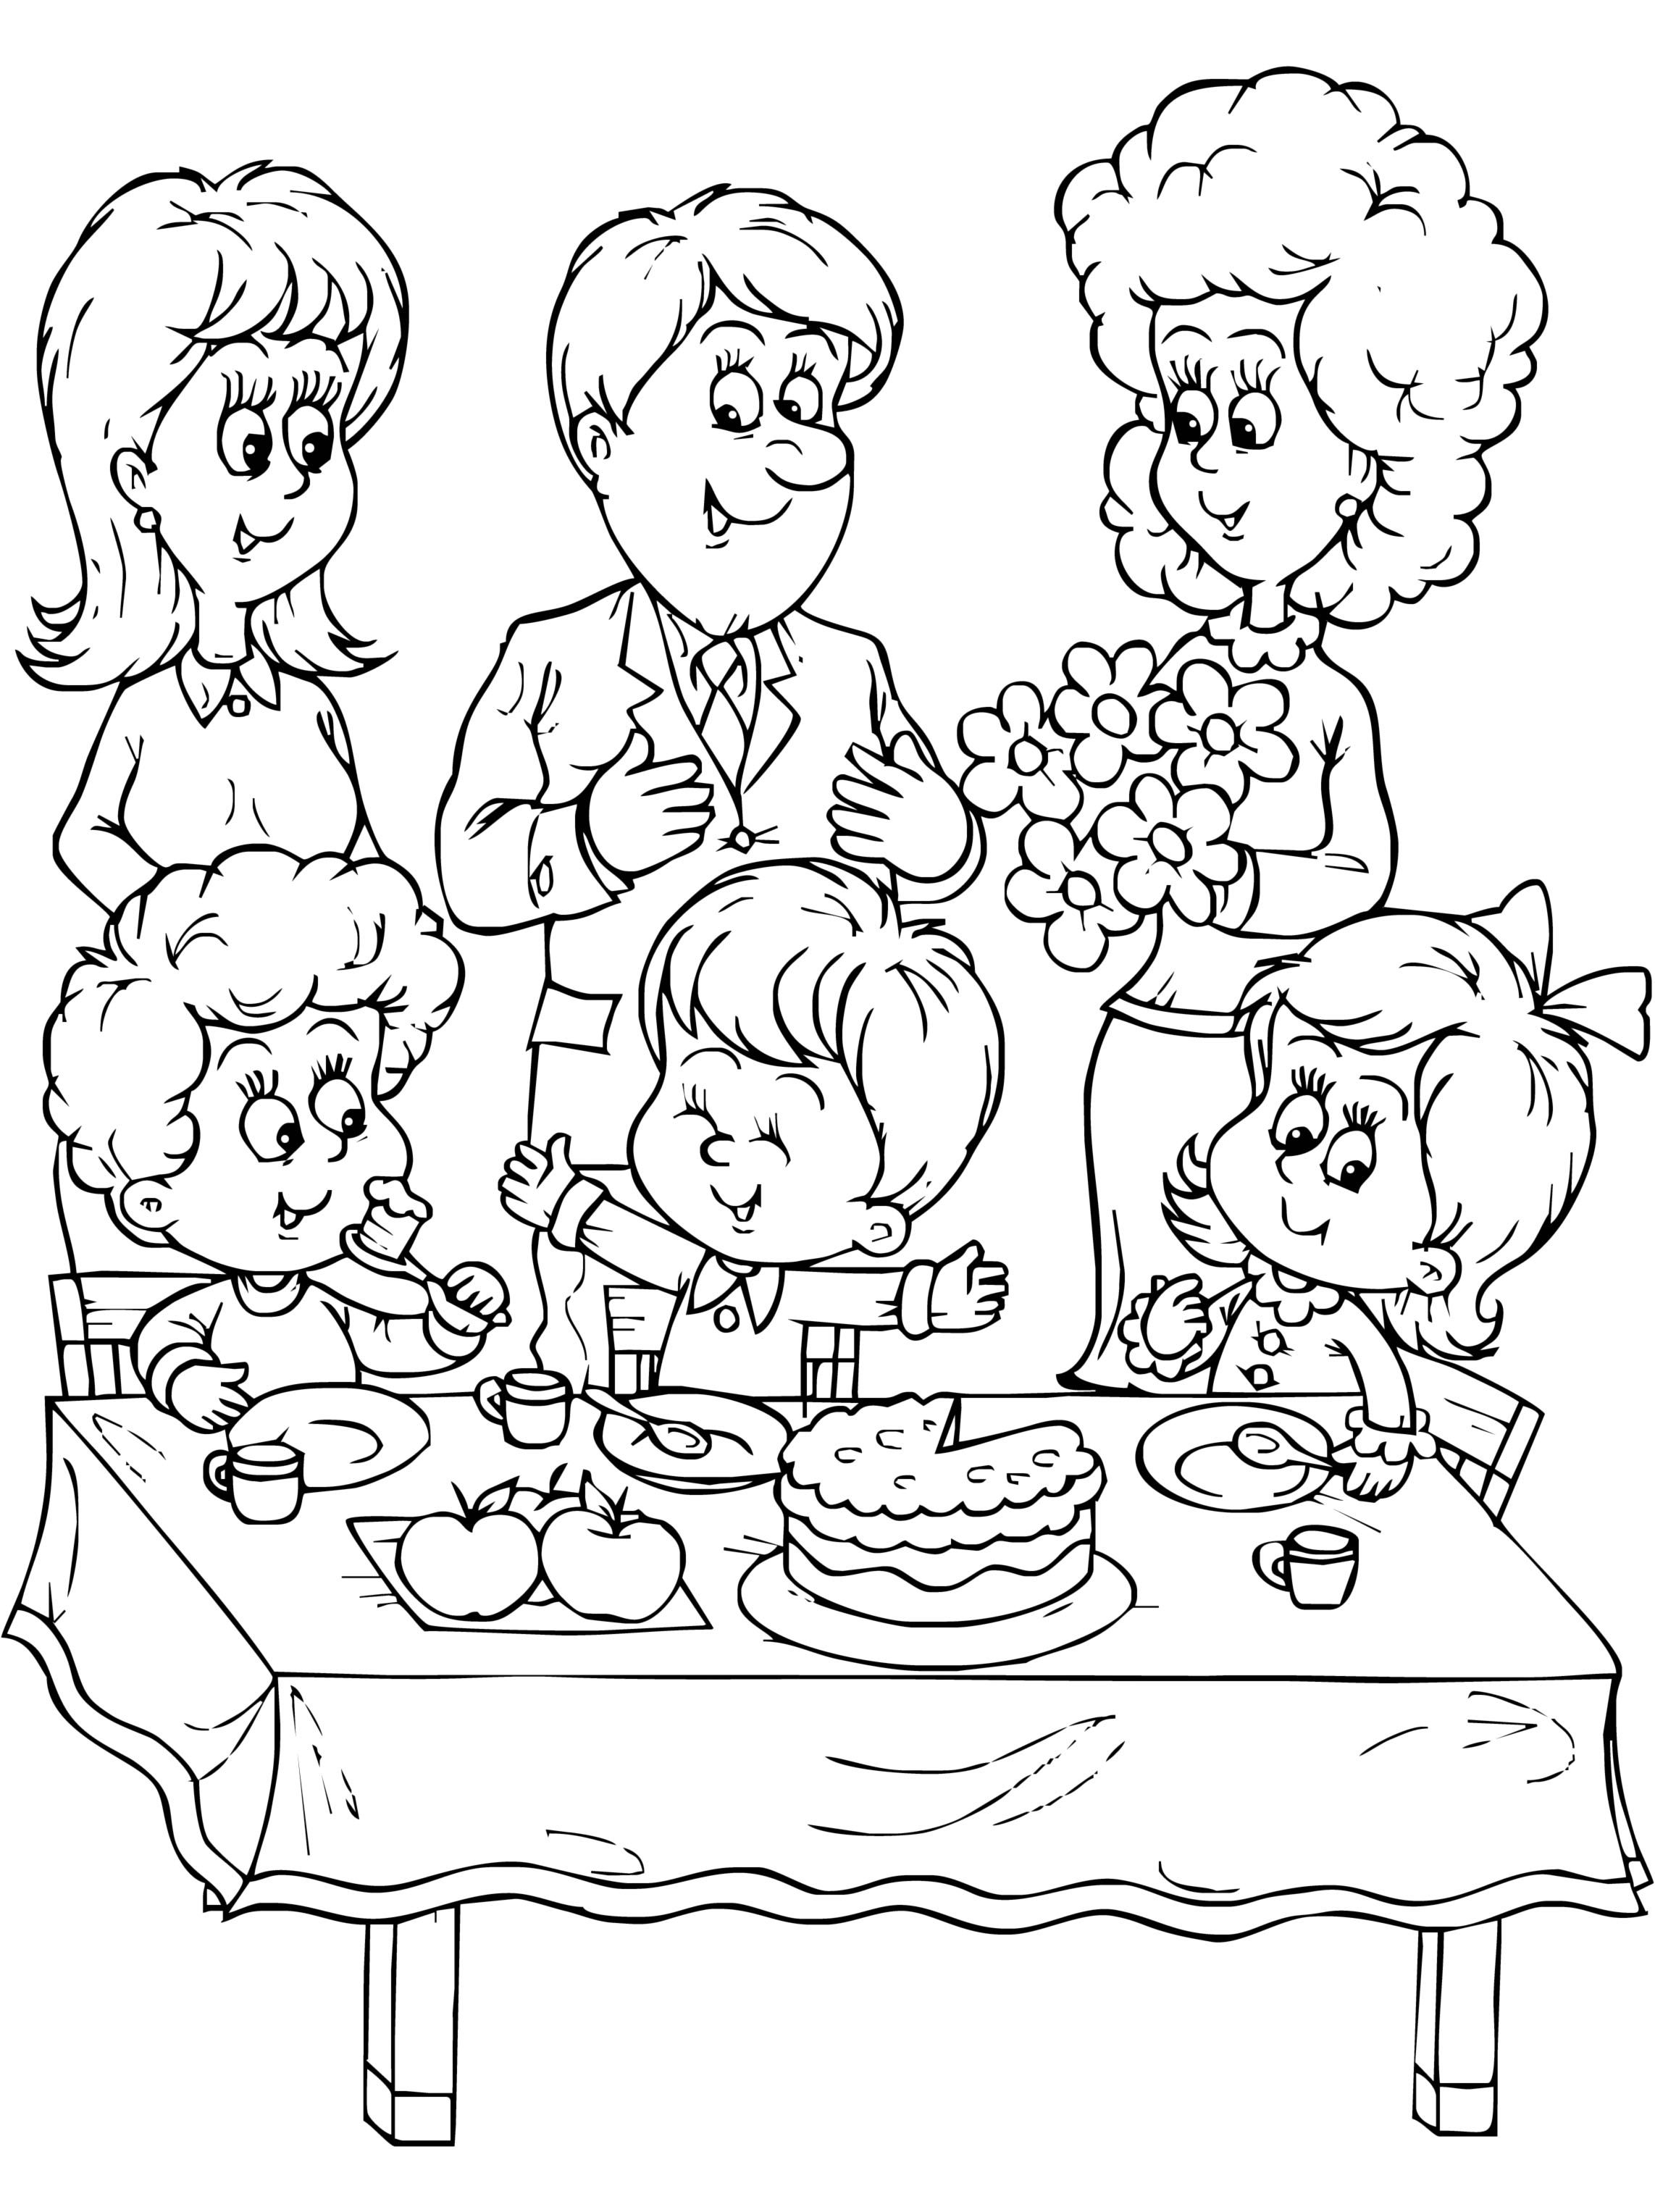 Family photo coloring pages ~ Coloring Pages Of Family - Coloring Home